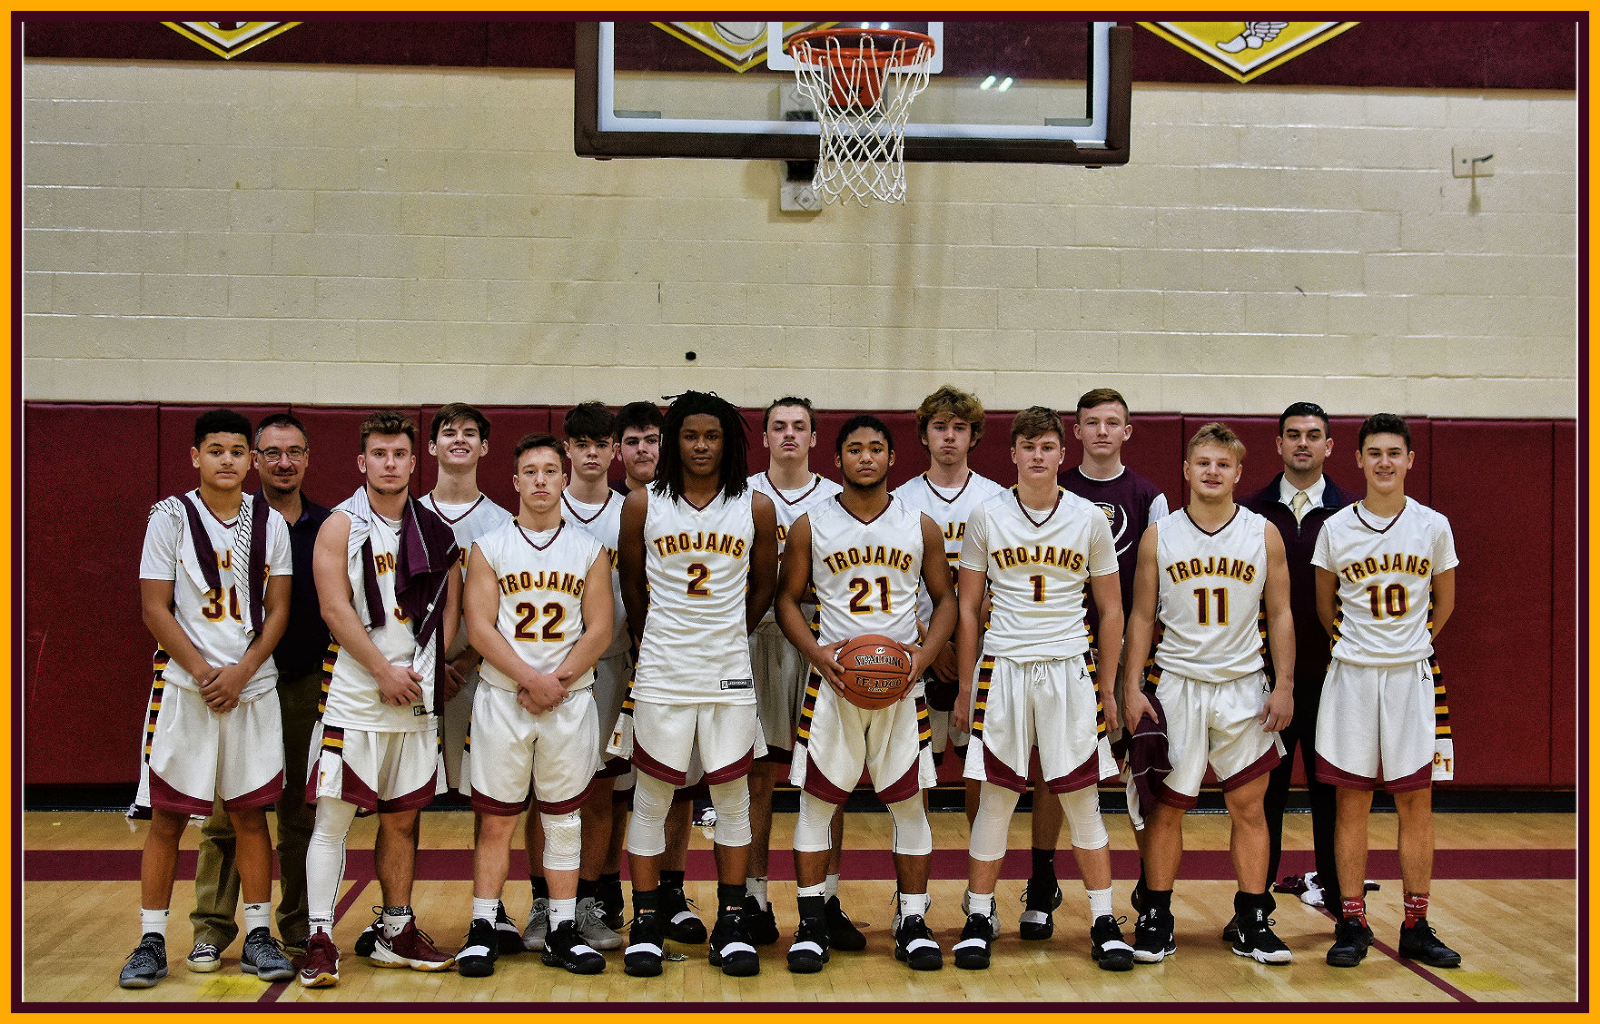 Trojans travel to Jennette for key section matchup tonight (1/11/19)